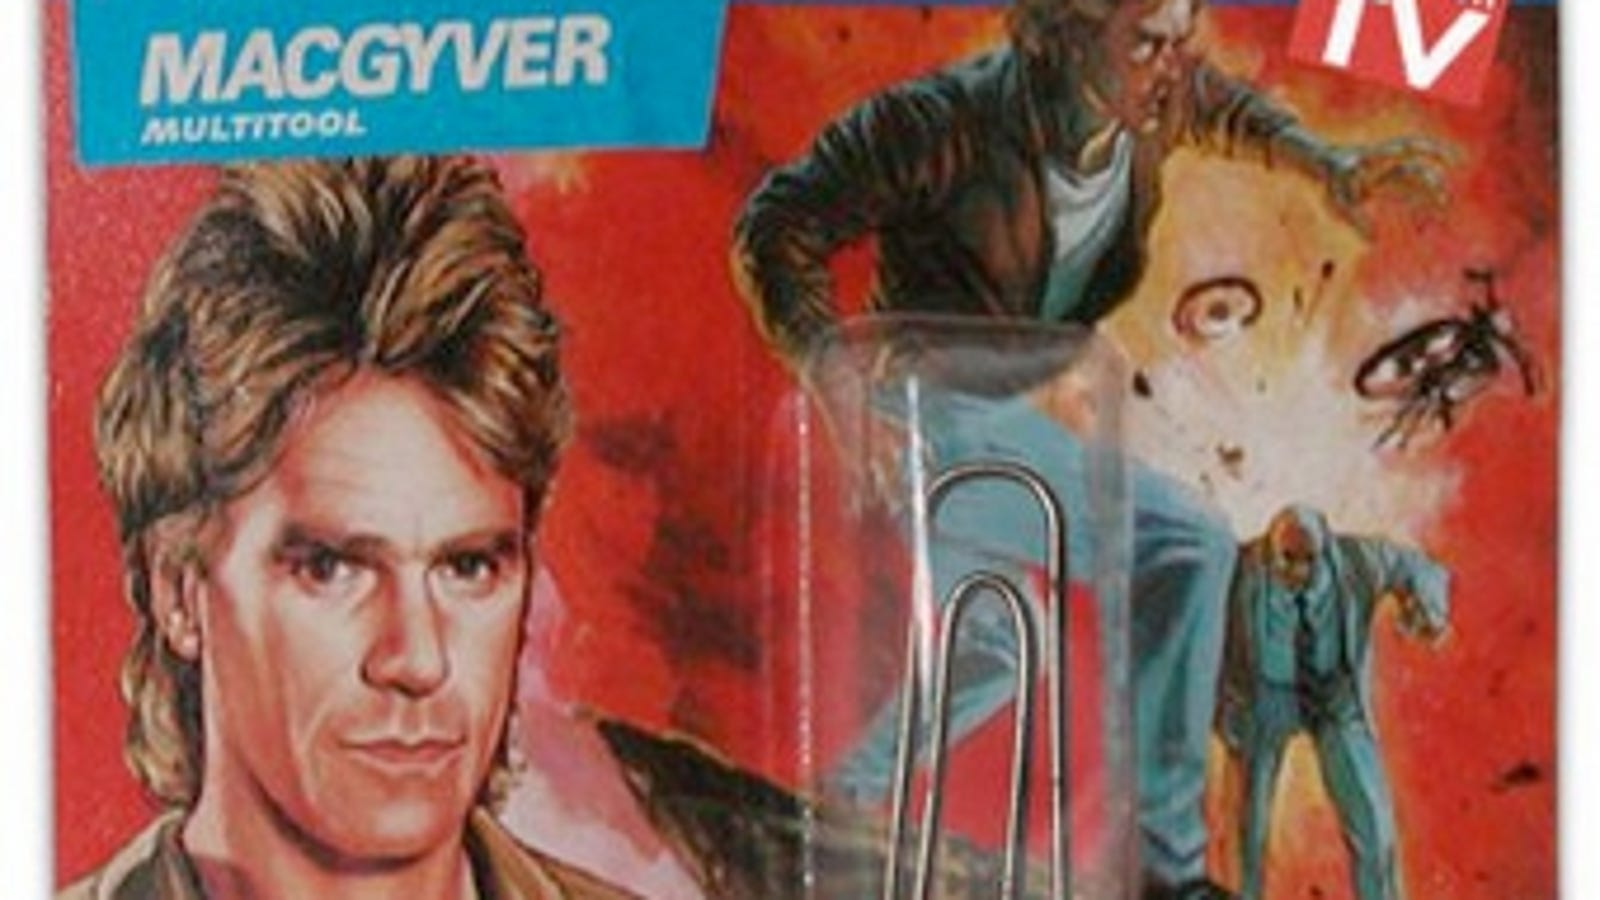 The Man Behind Macgyver Swiss Army Knife Or Duct Tape